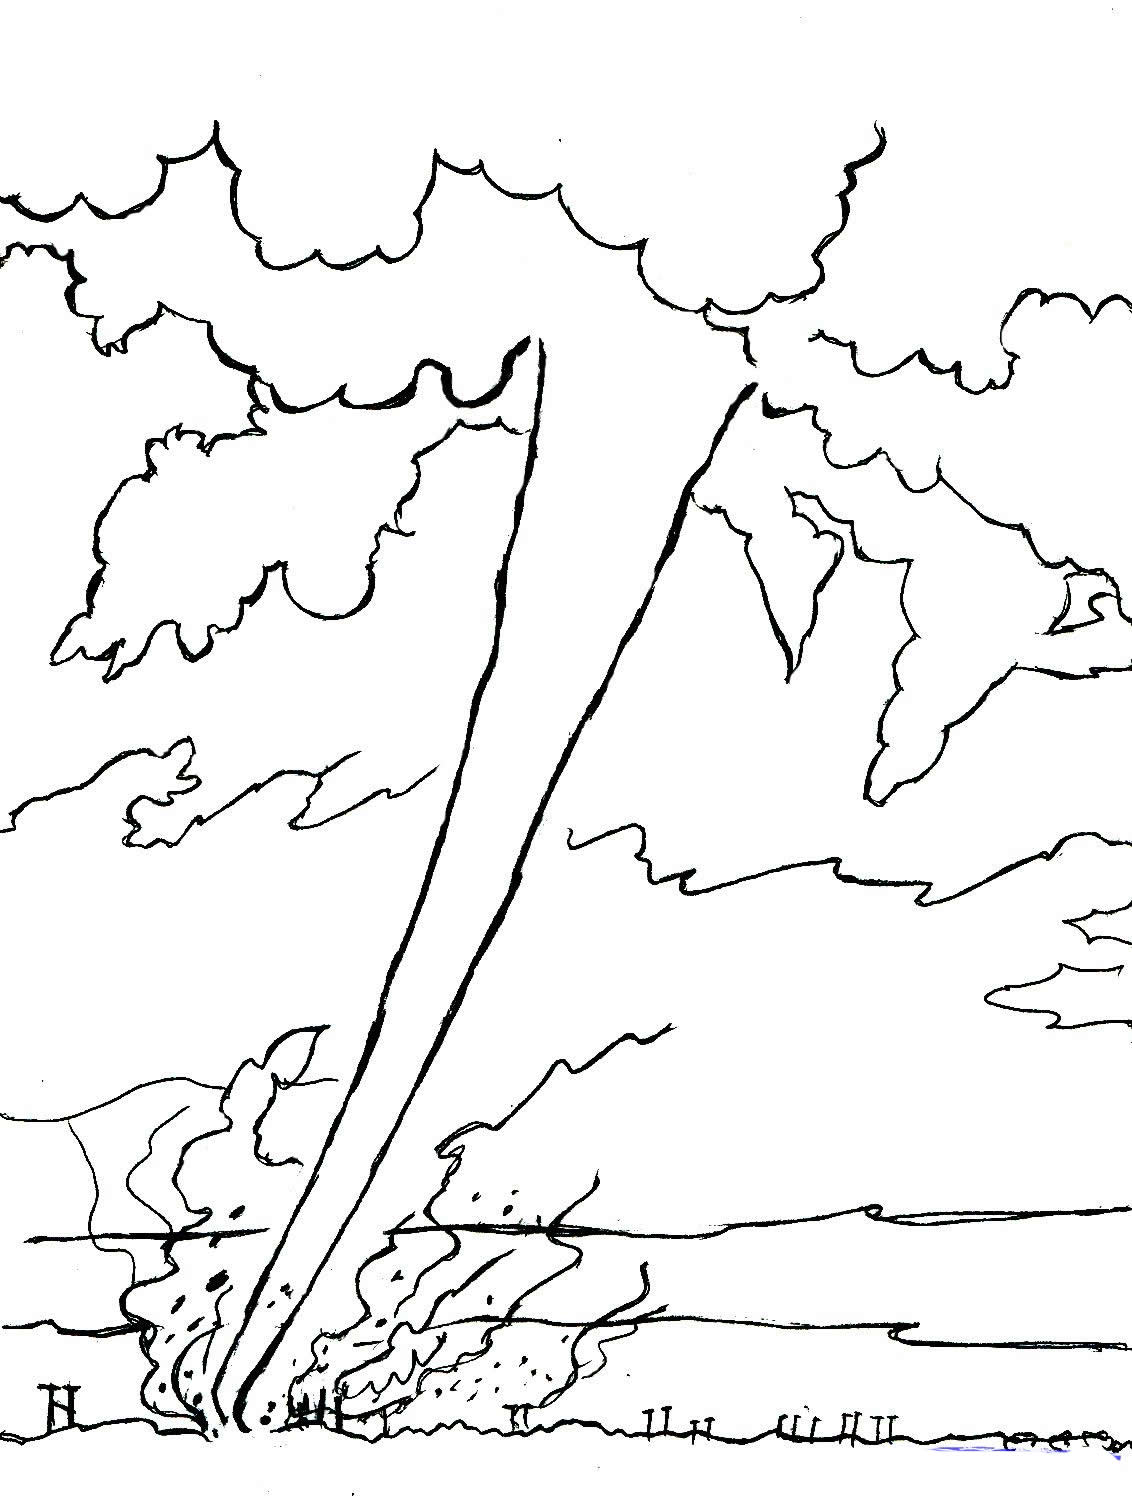 Tornado Coloring Pages To Download And Print For Free Tornado Coloring Page